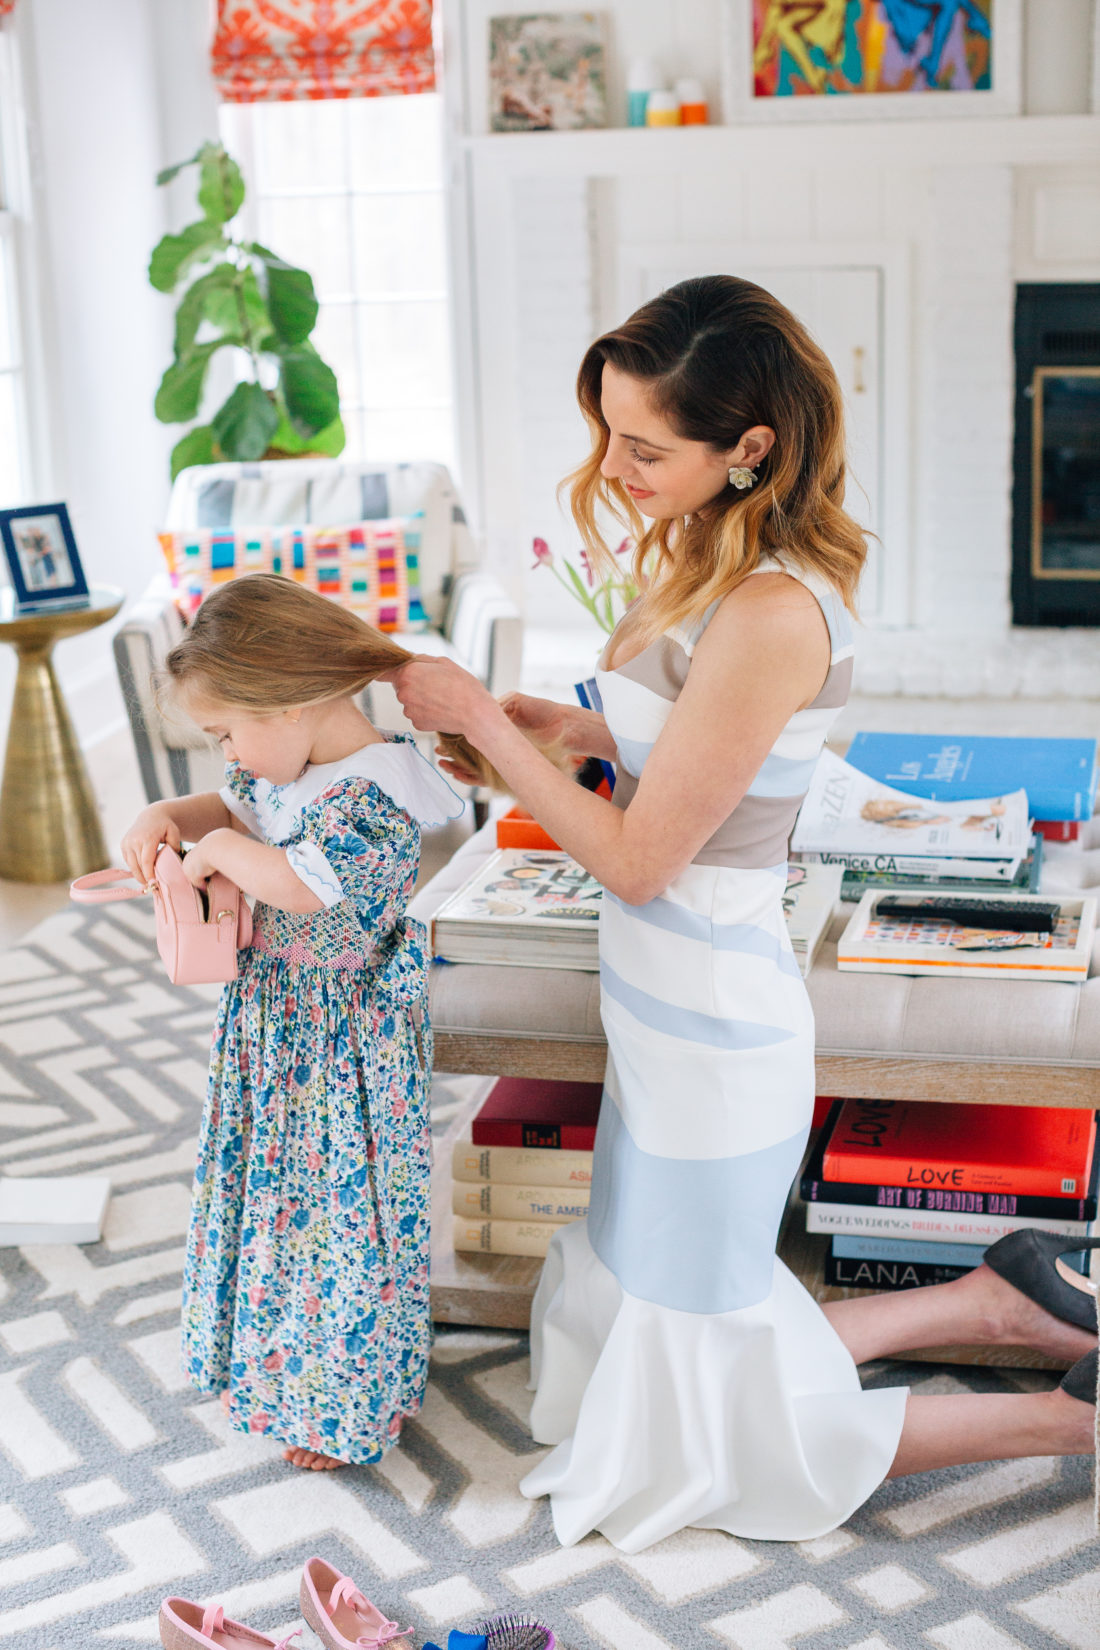 Eva Amurri Martino combs through three year old daughter Marlowe's hair wearing pastel and floral dresses for Easter in the family room of their Connecticut home